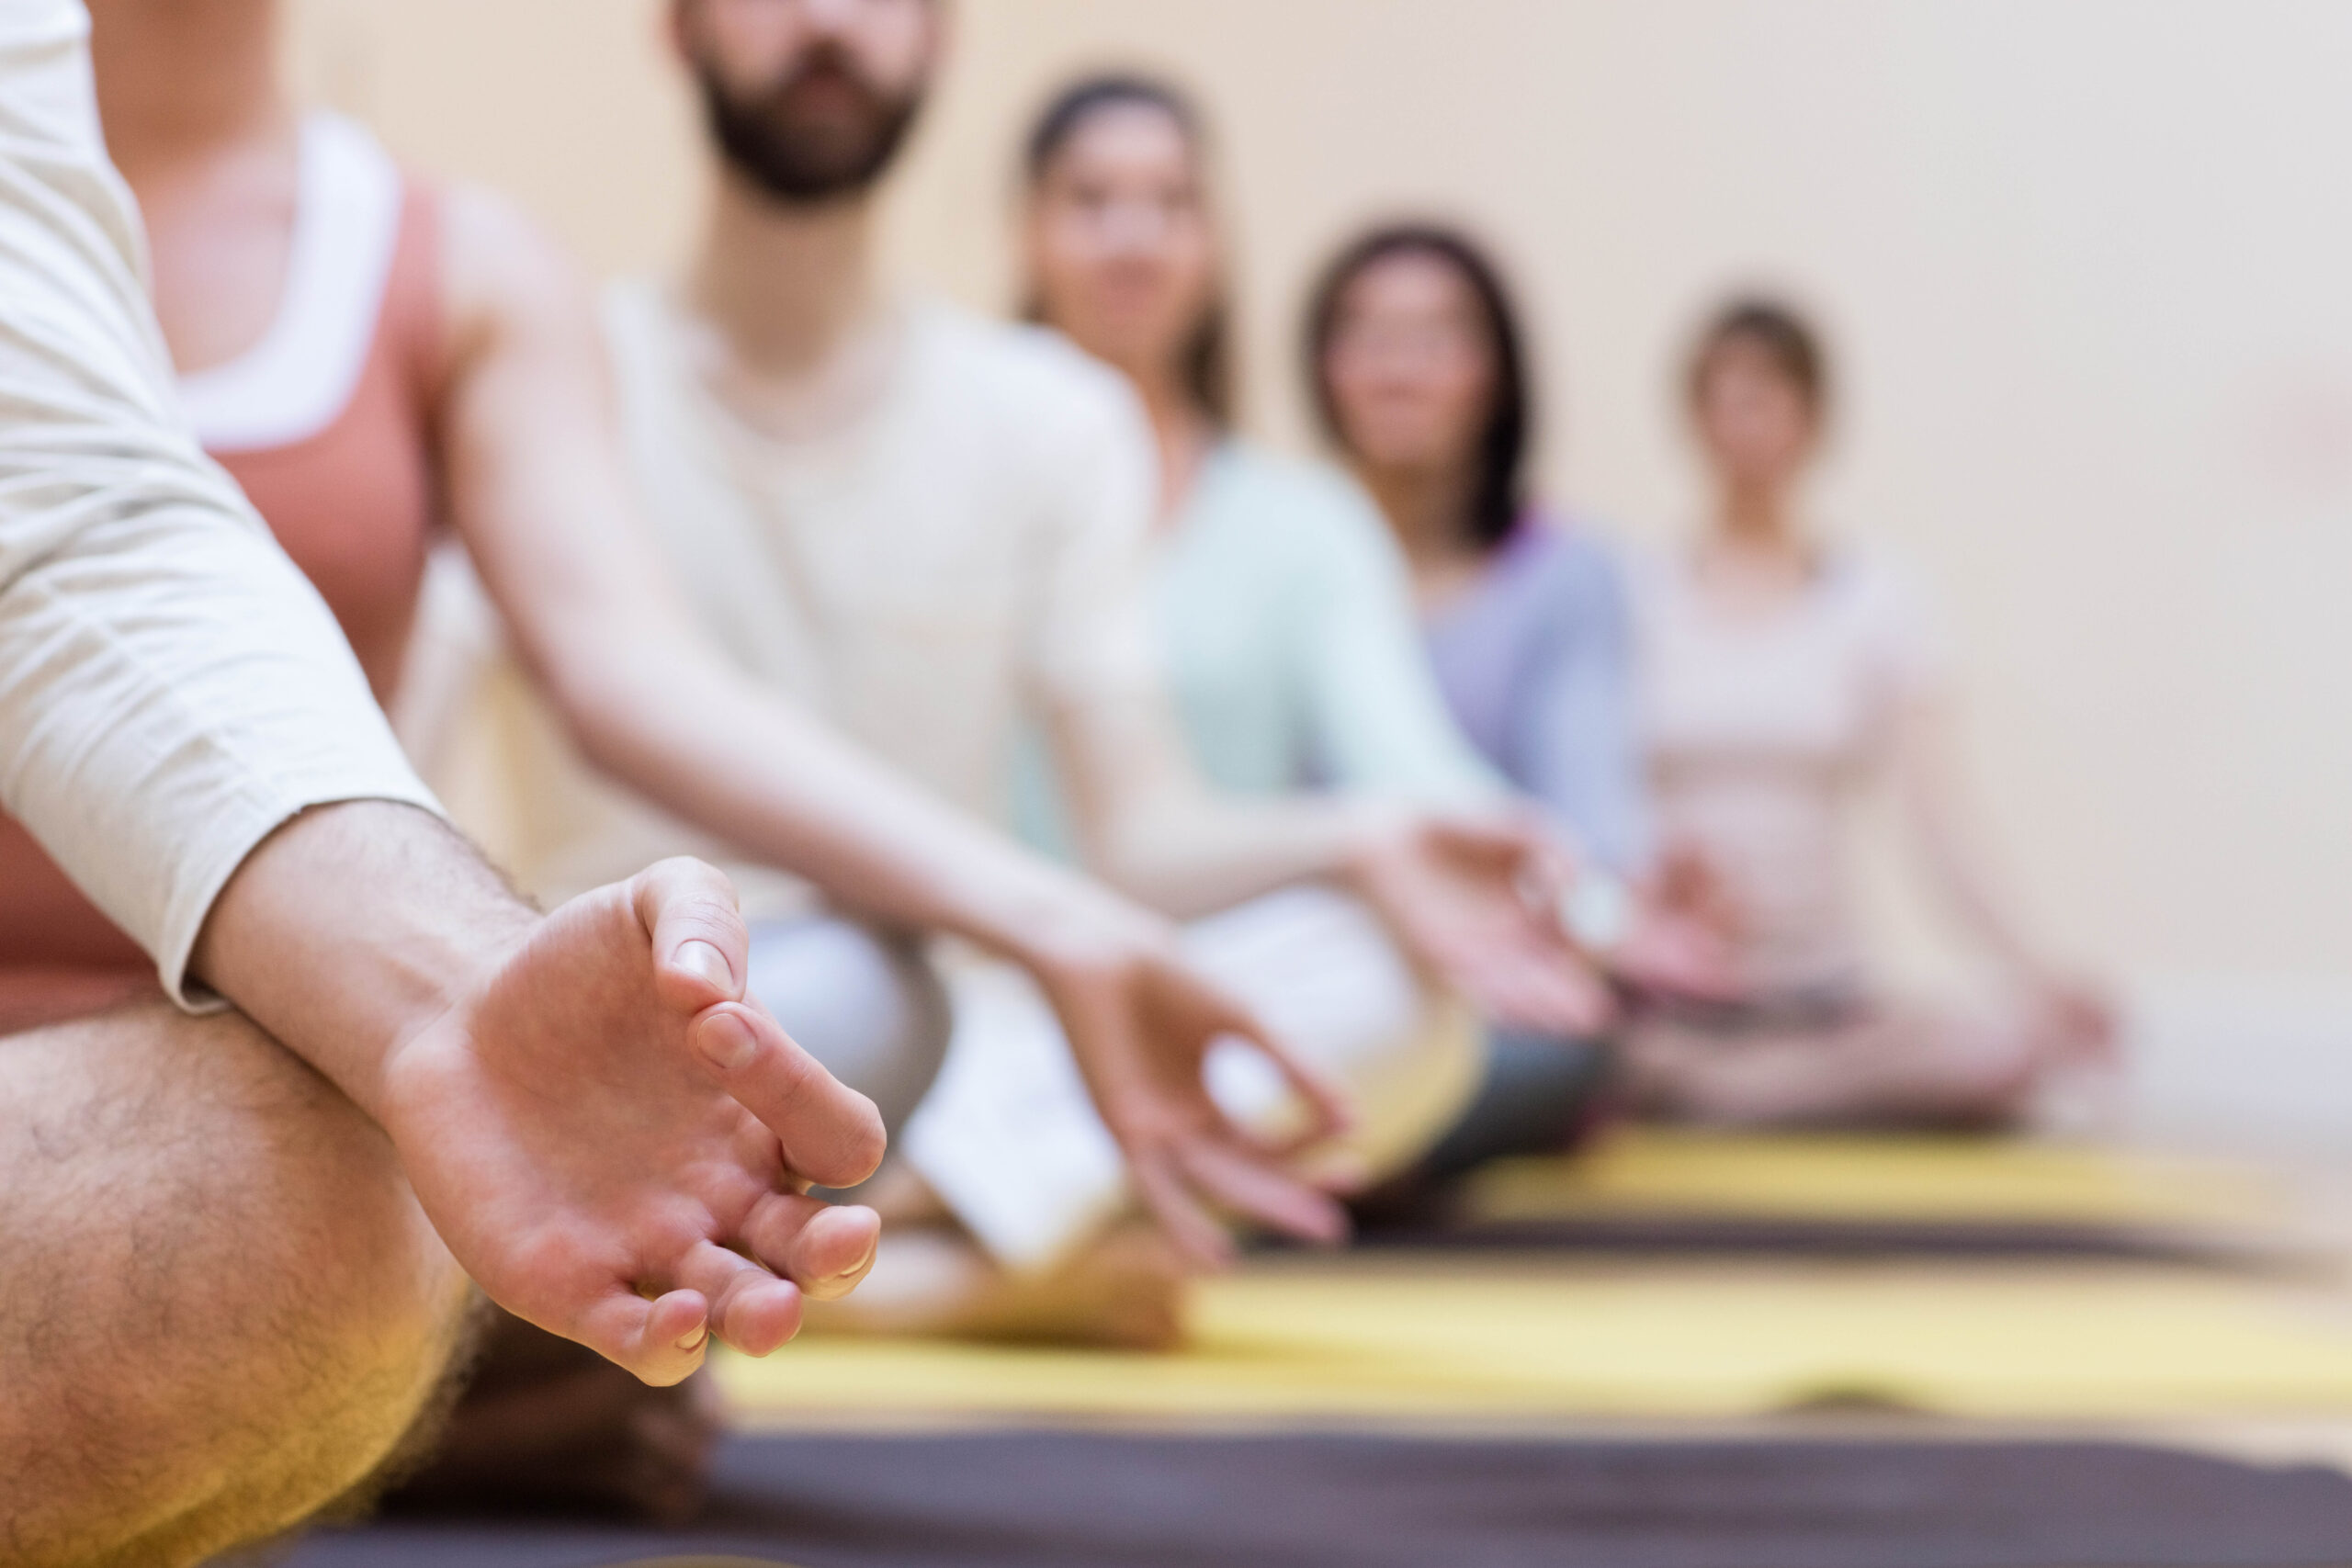 Group of people doing meditation on exercise mat in the fitness studio